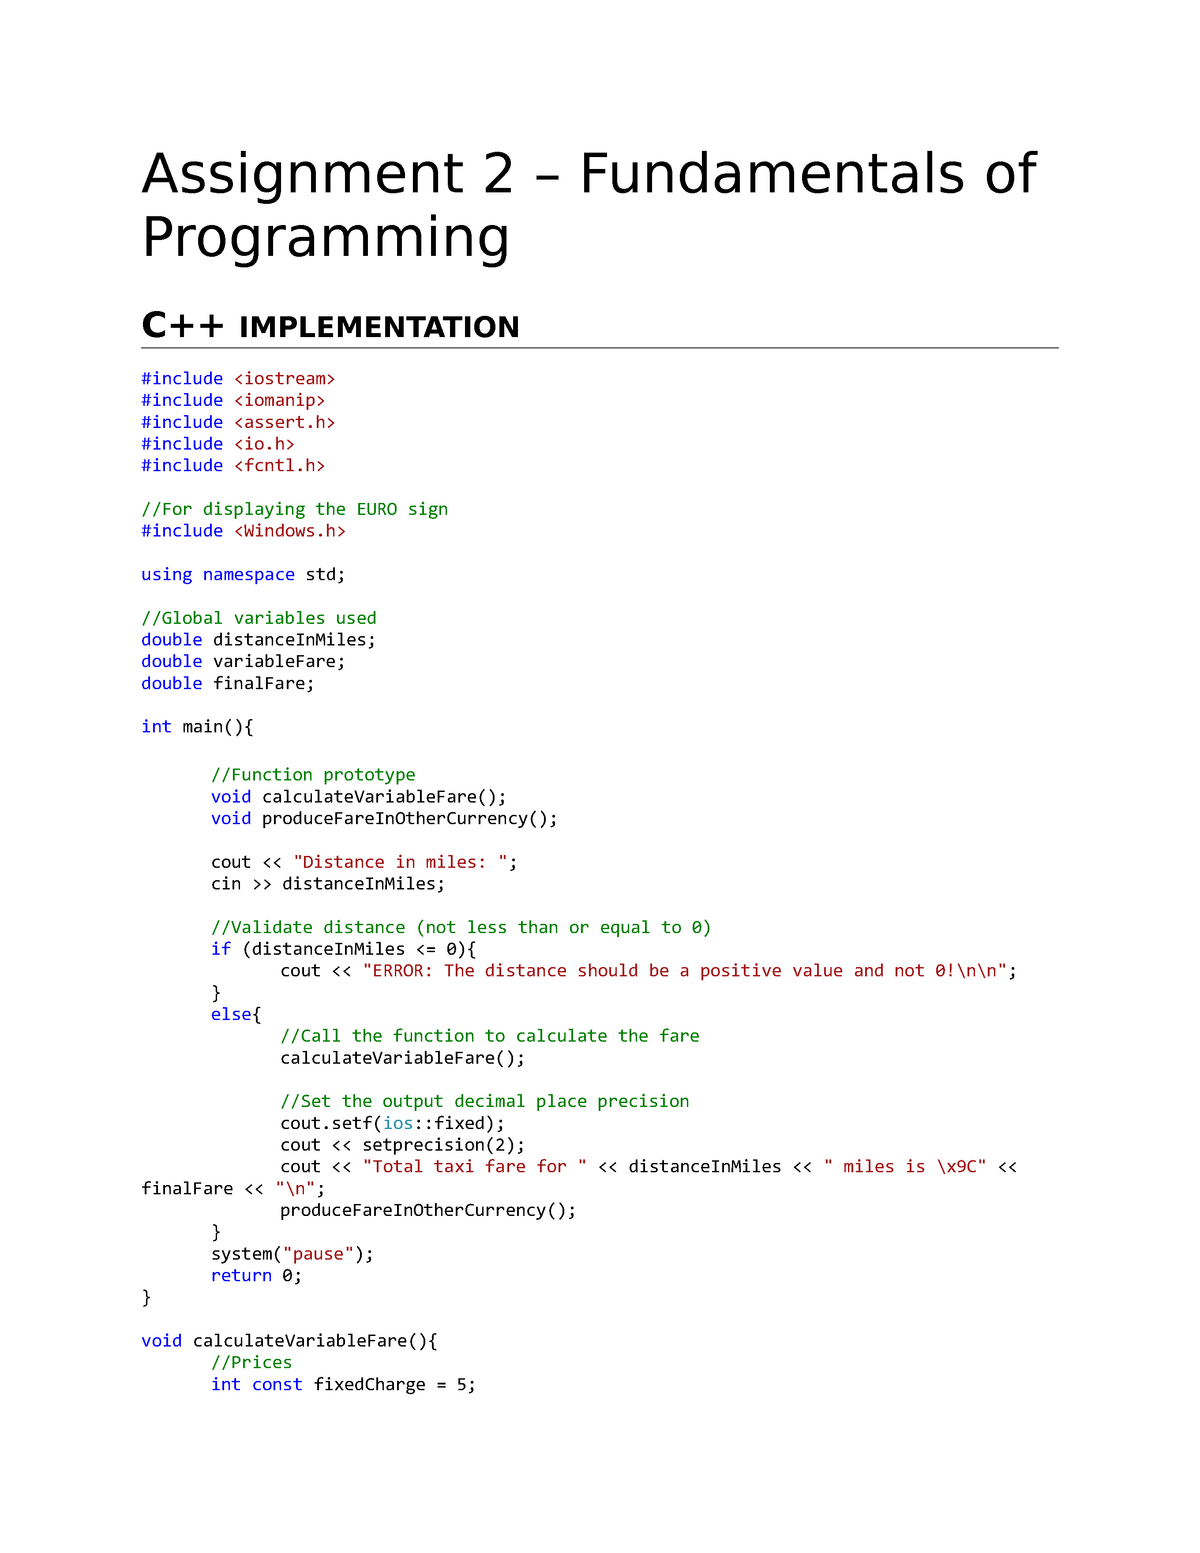 Fo P HWk#2 RR Assignment 2 - fundamentals of programming